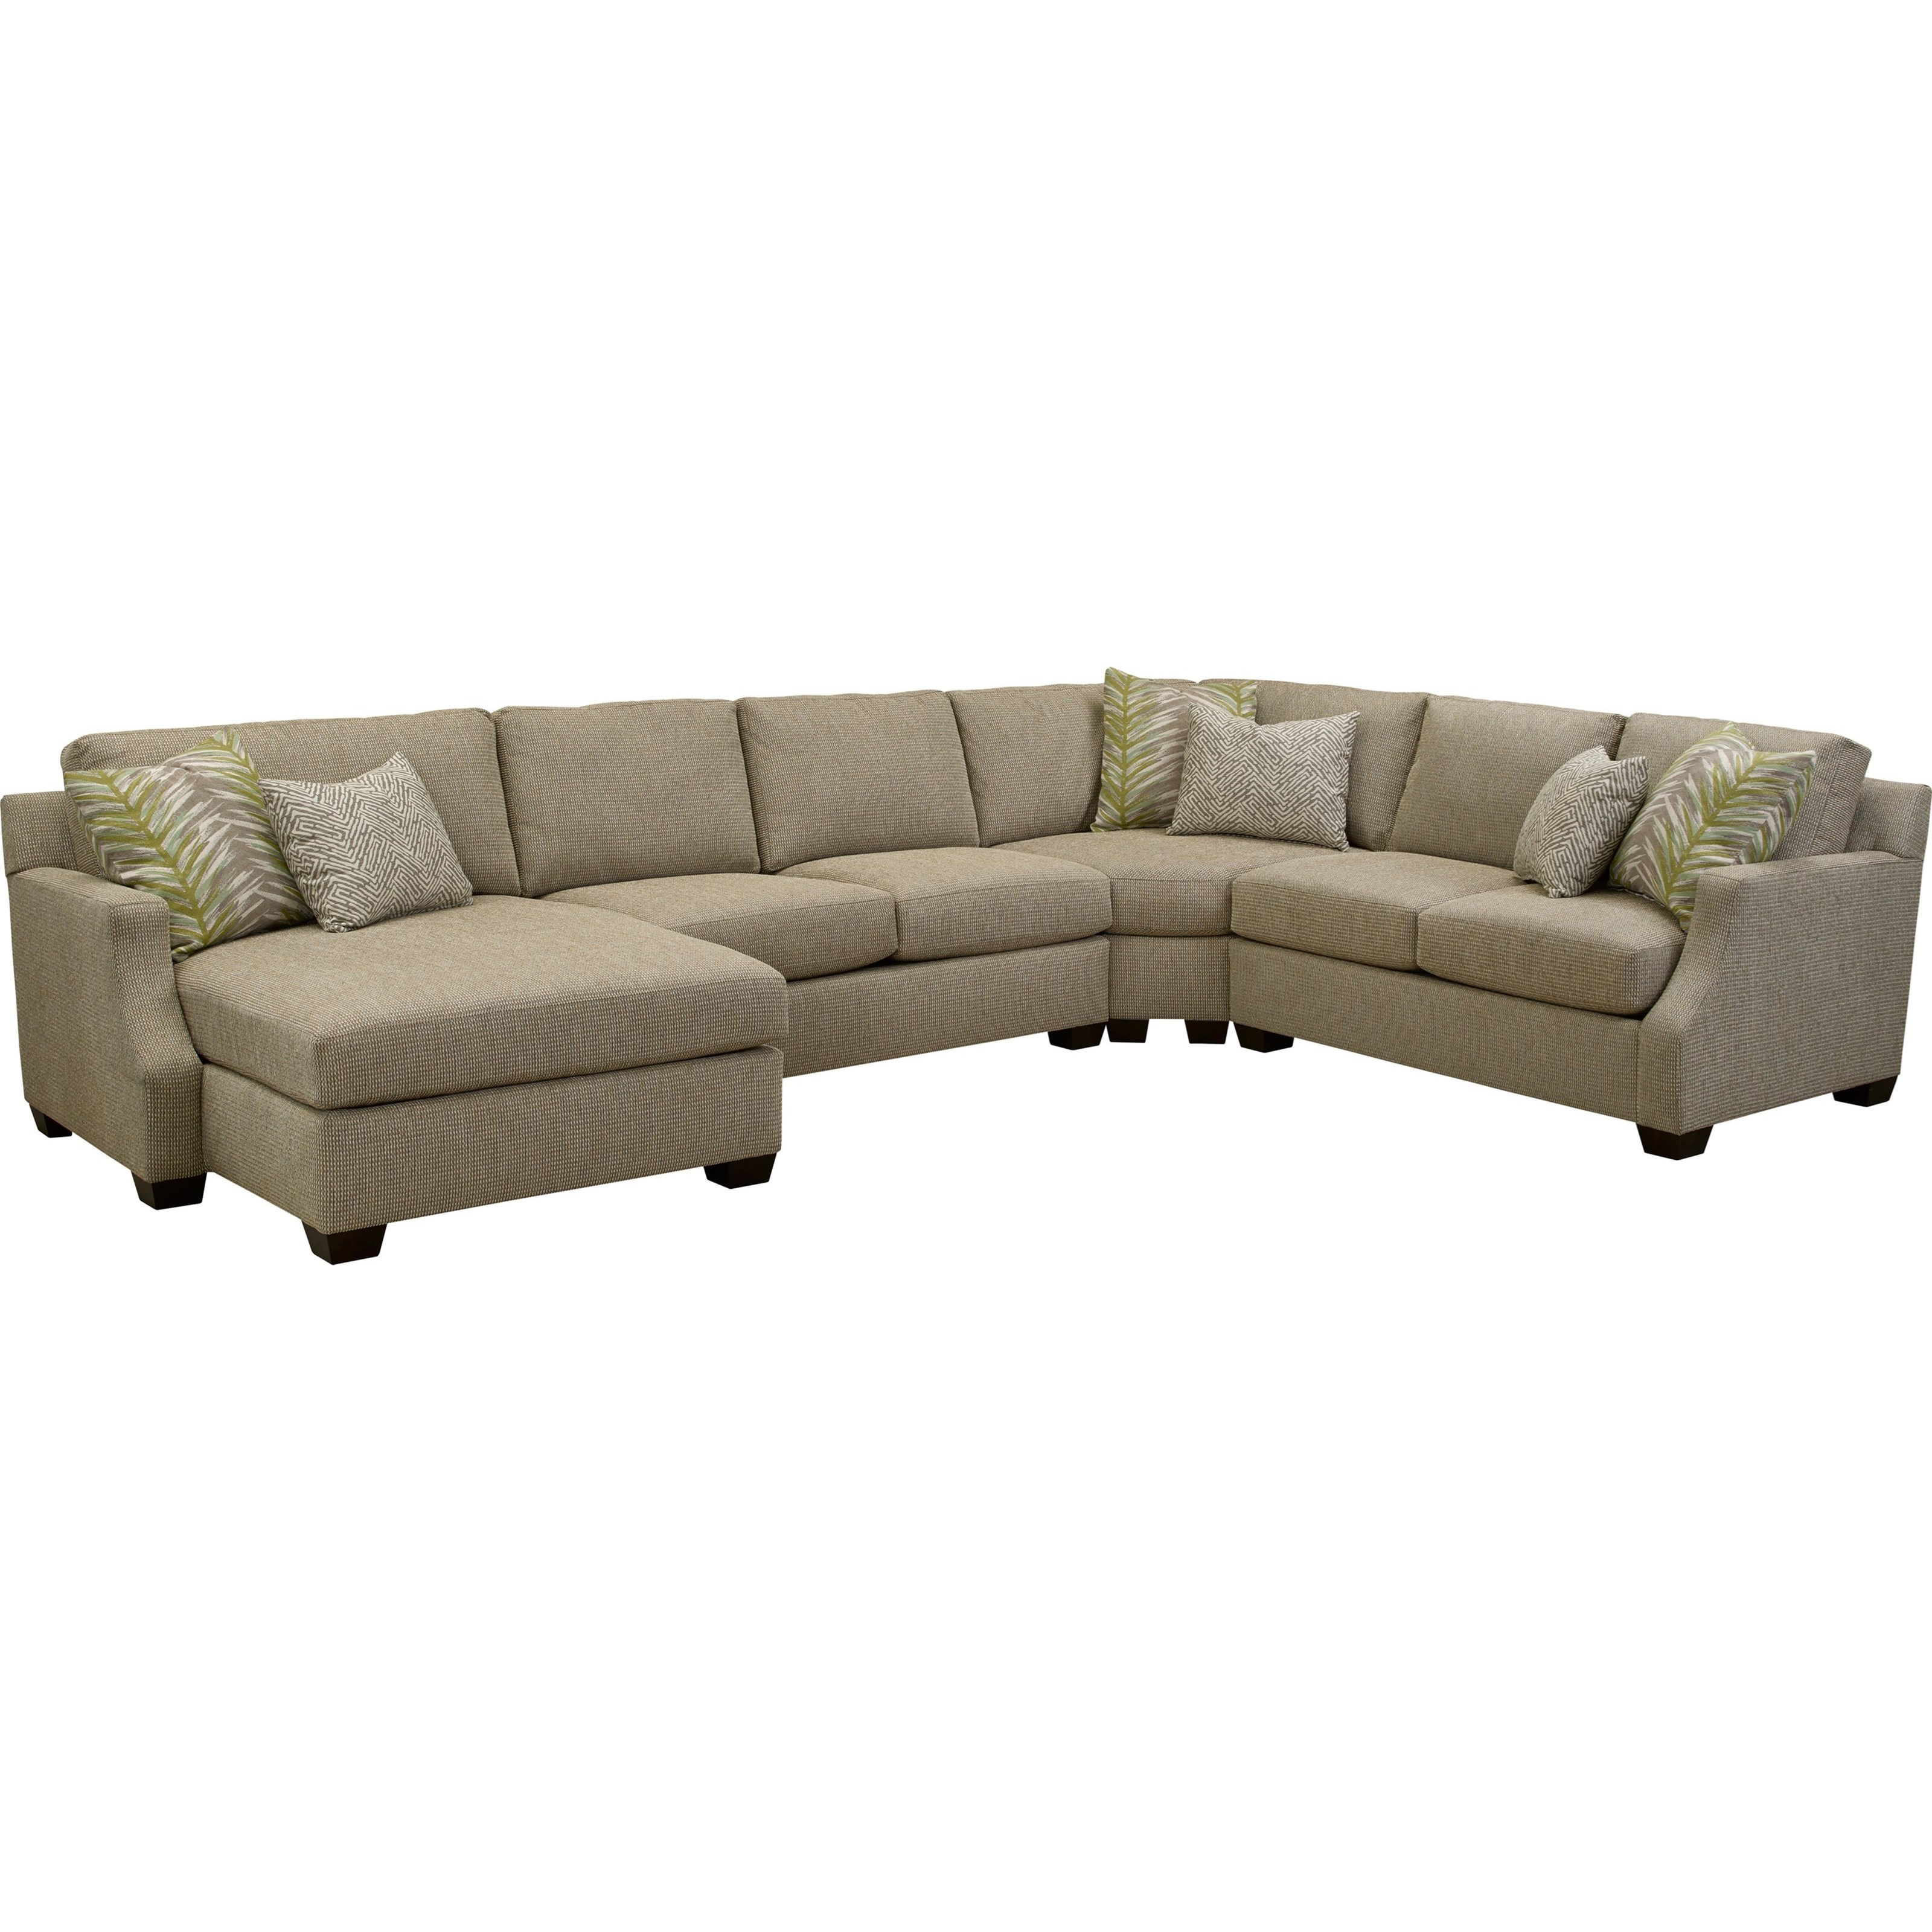 store gregory jonathan sectional rmsht sofa piece louis living urban